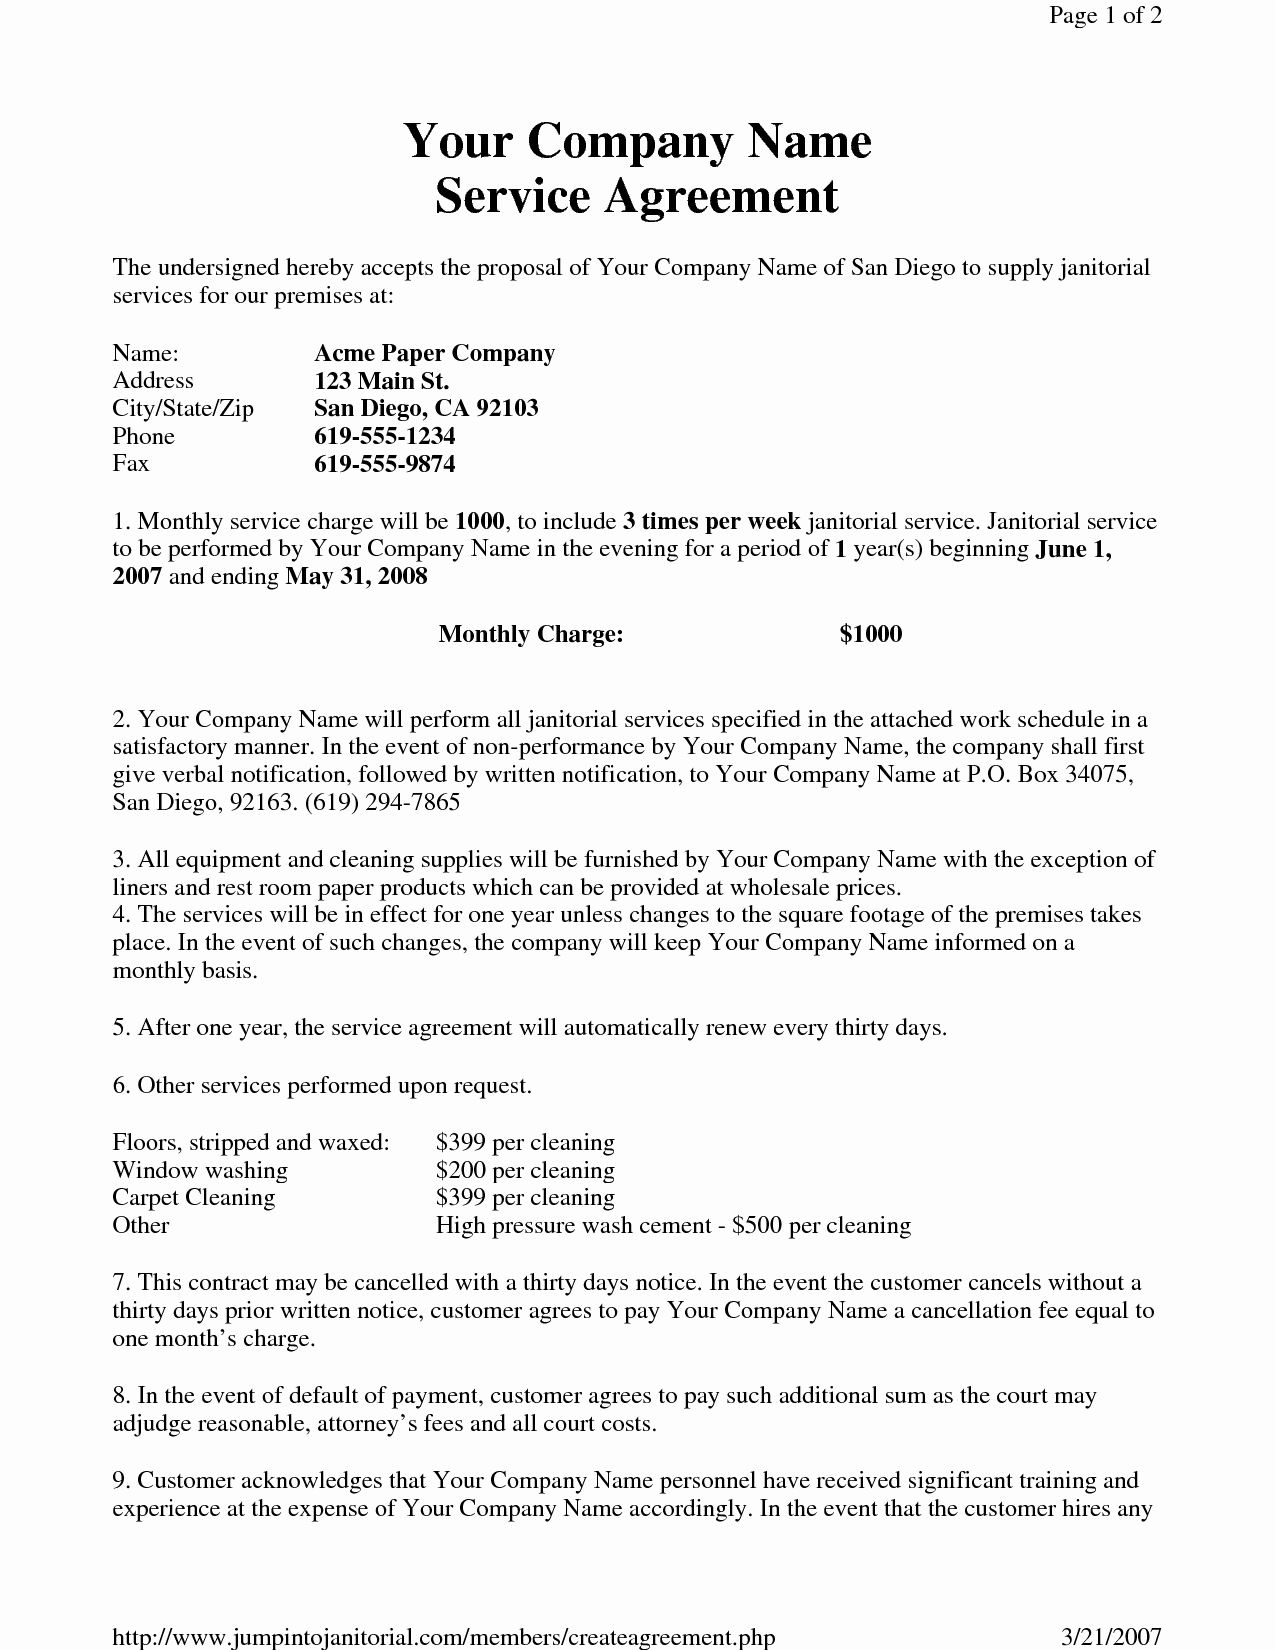 Sample Contract for Services Lovely Janitorial Service Agreement by Hgh Sample